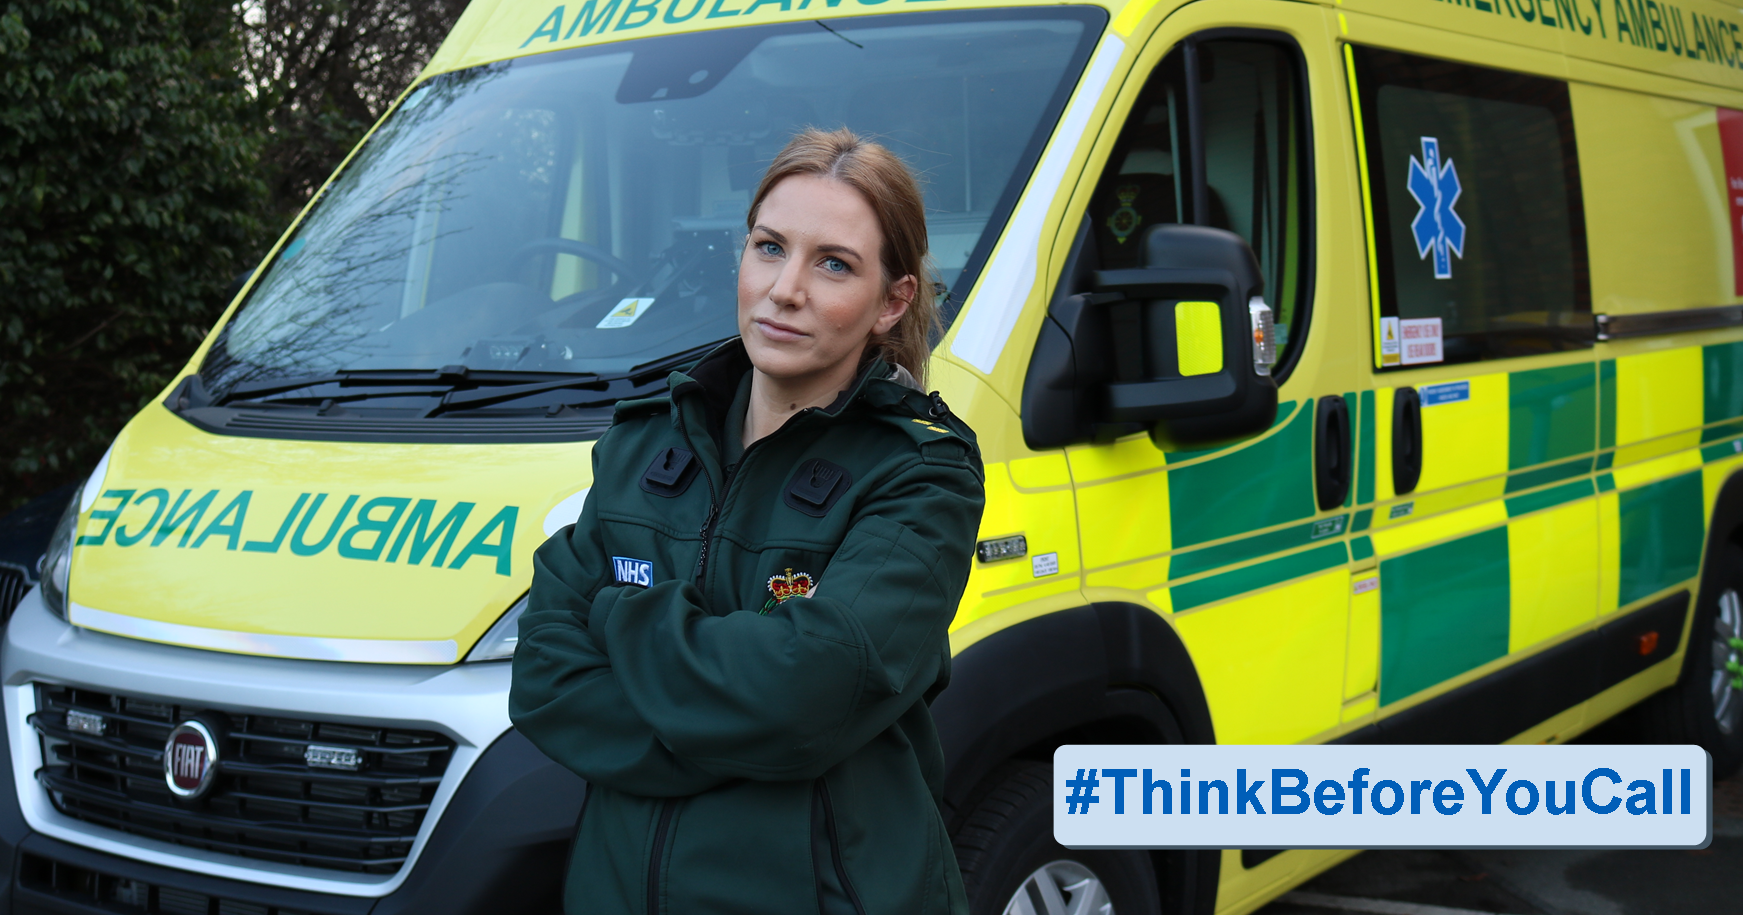 Think Before You Call | Yorkshire Ambulance Service